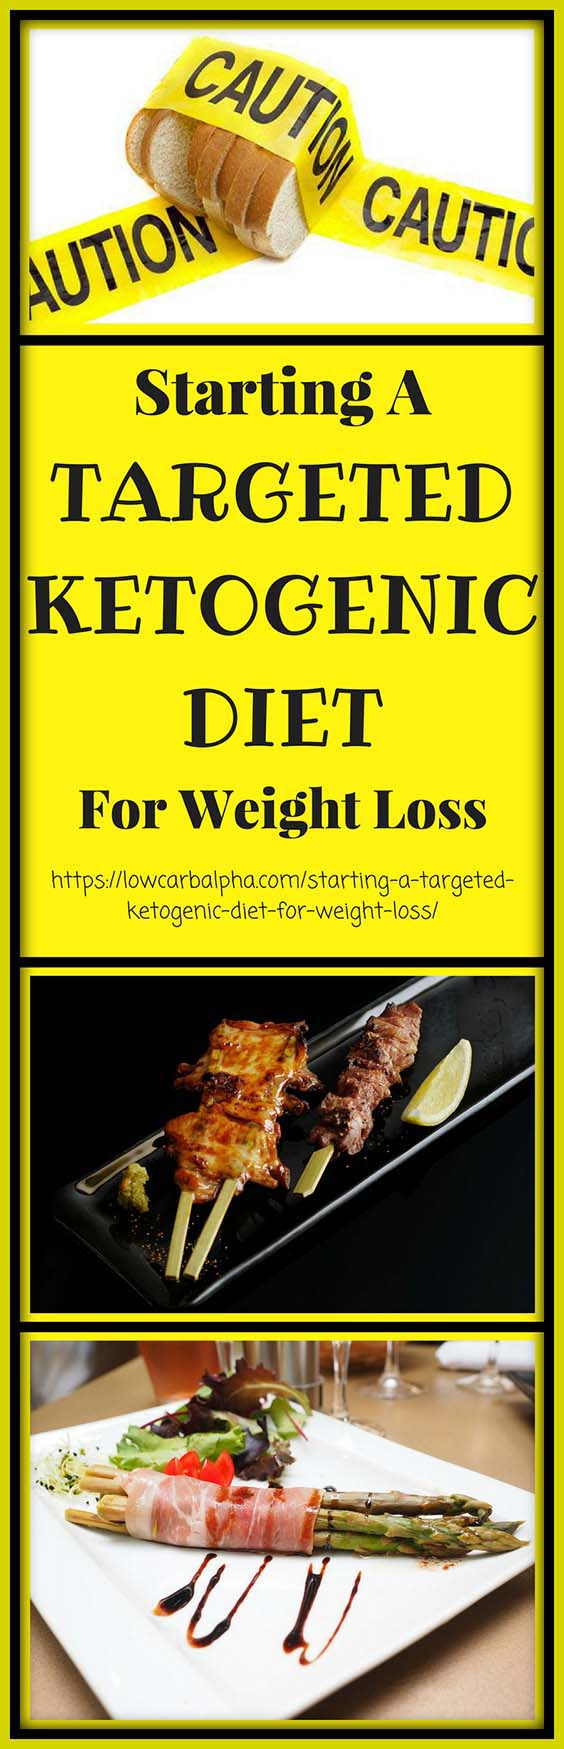 Starting a targeted ketogenic diet for weight loss